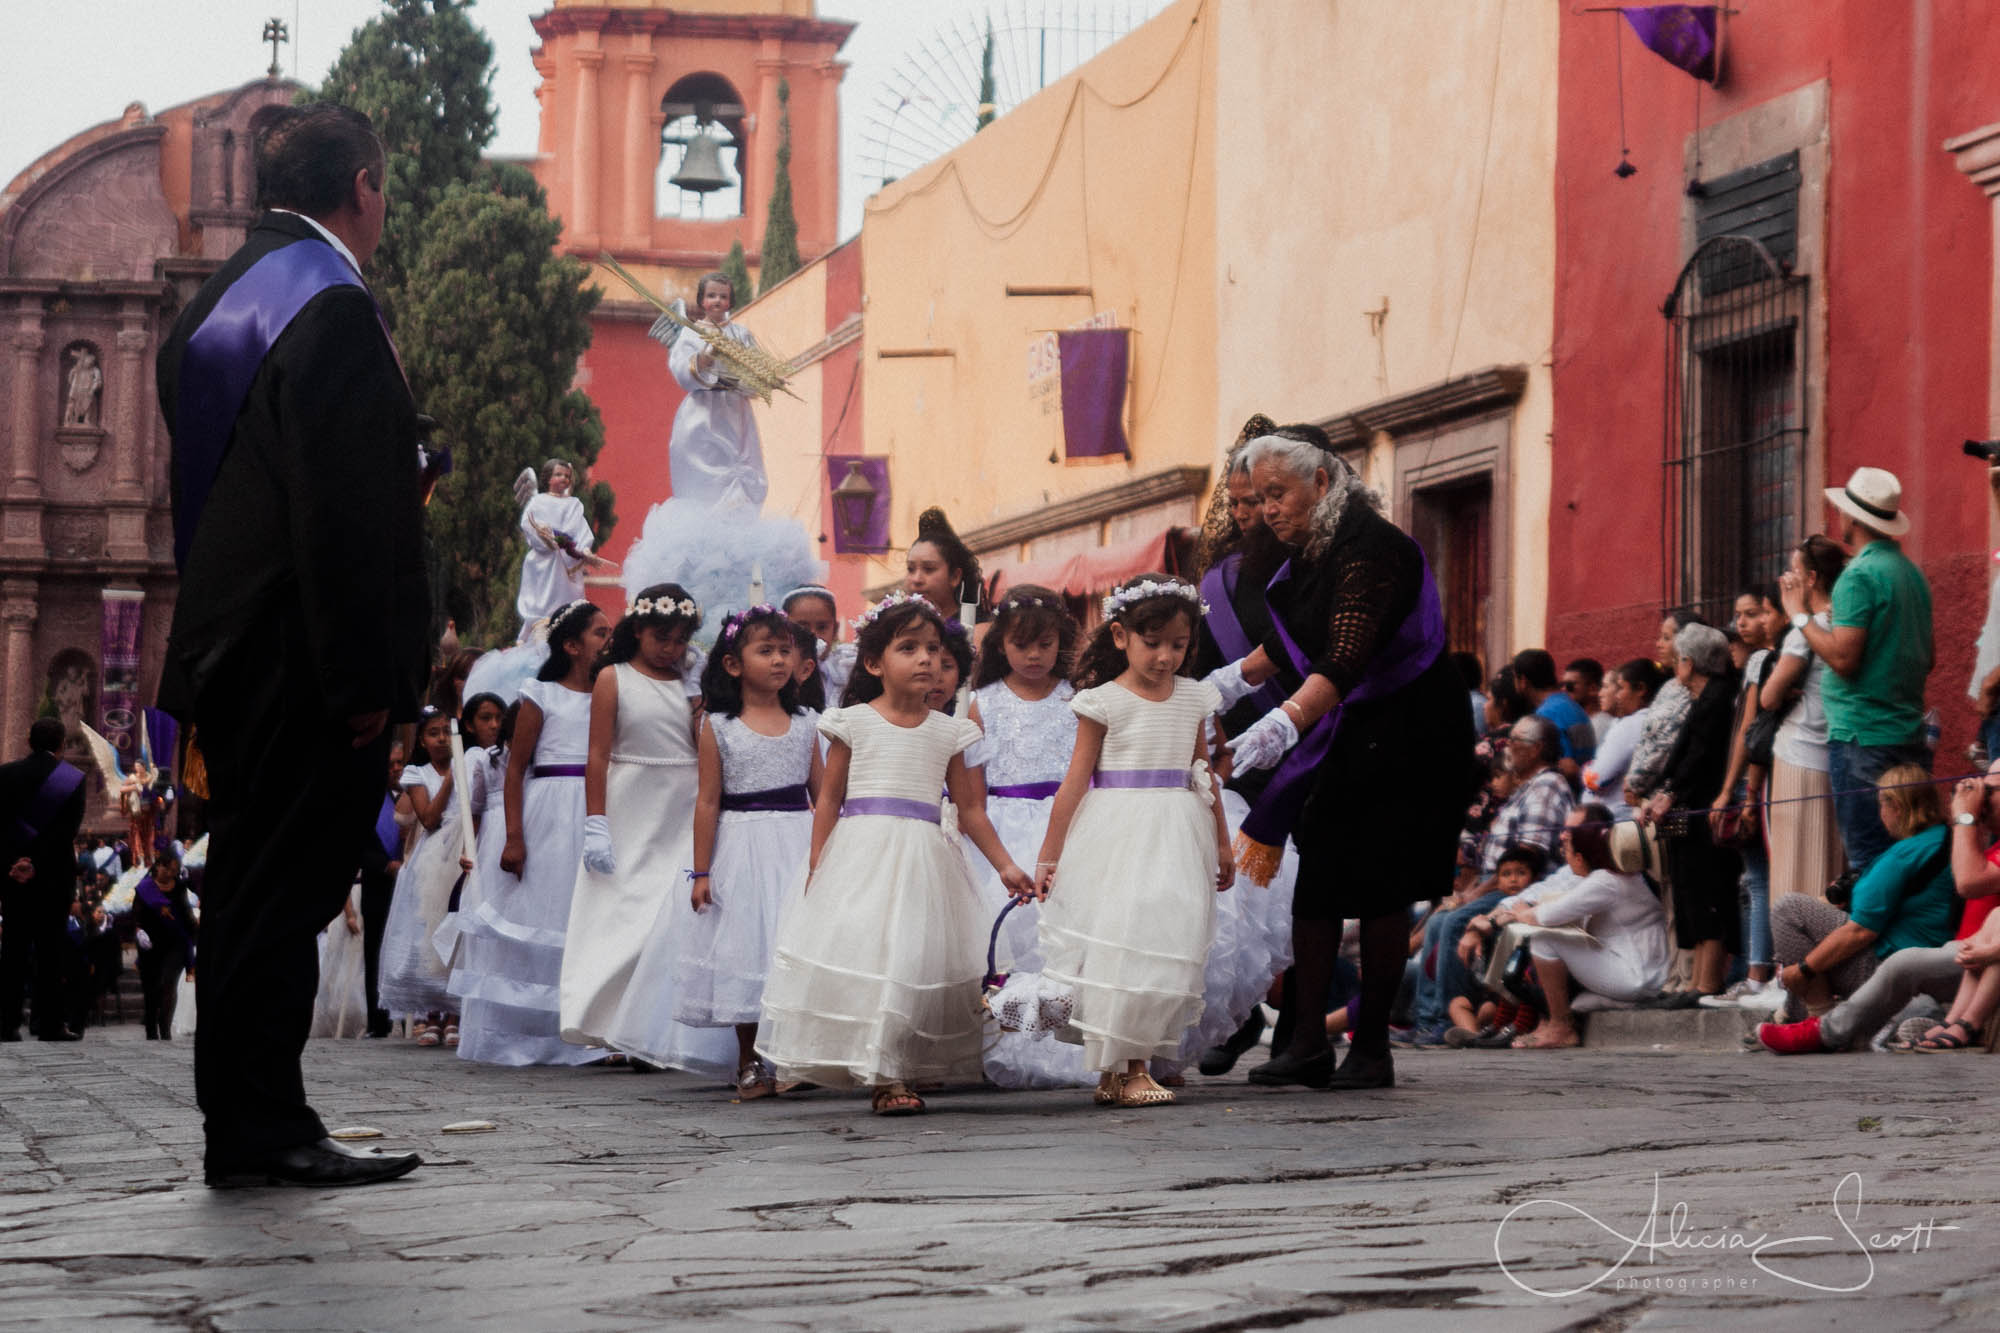 Angelitos during Holy Wednesday or Miercoles Santa during Holy Week in San Miguel de Allende